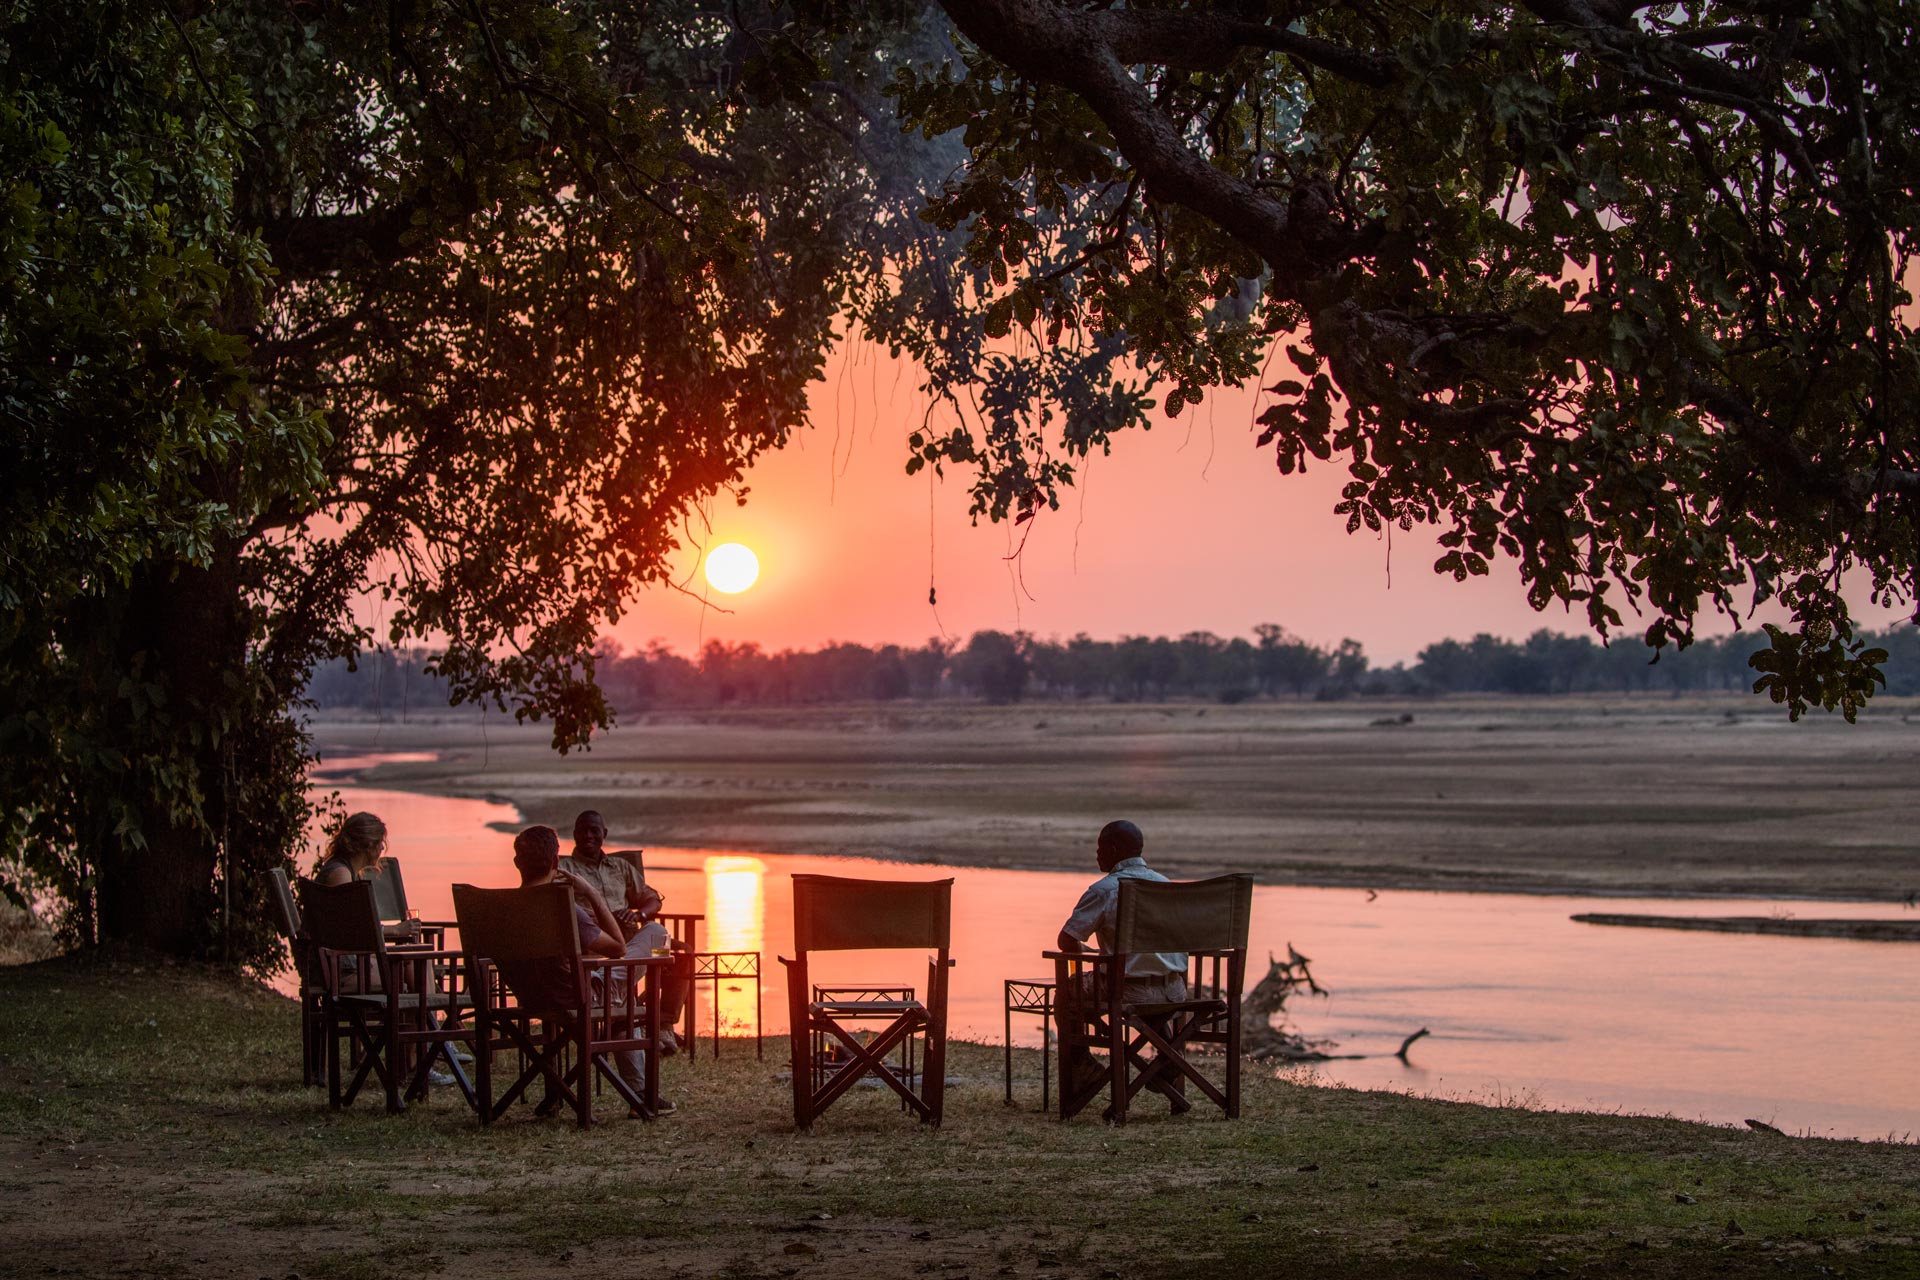 Enjoying sundowners on the east bank of the Luangwa River at Tafika Camp in Zambia